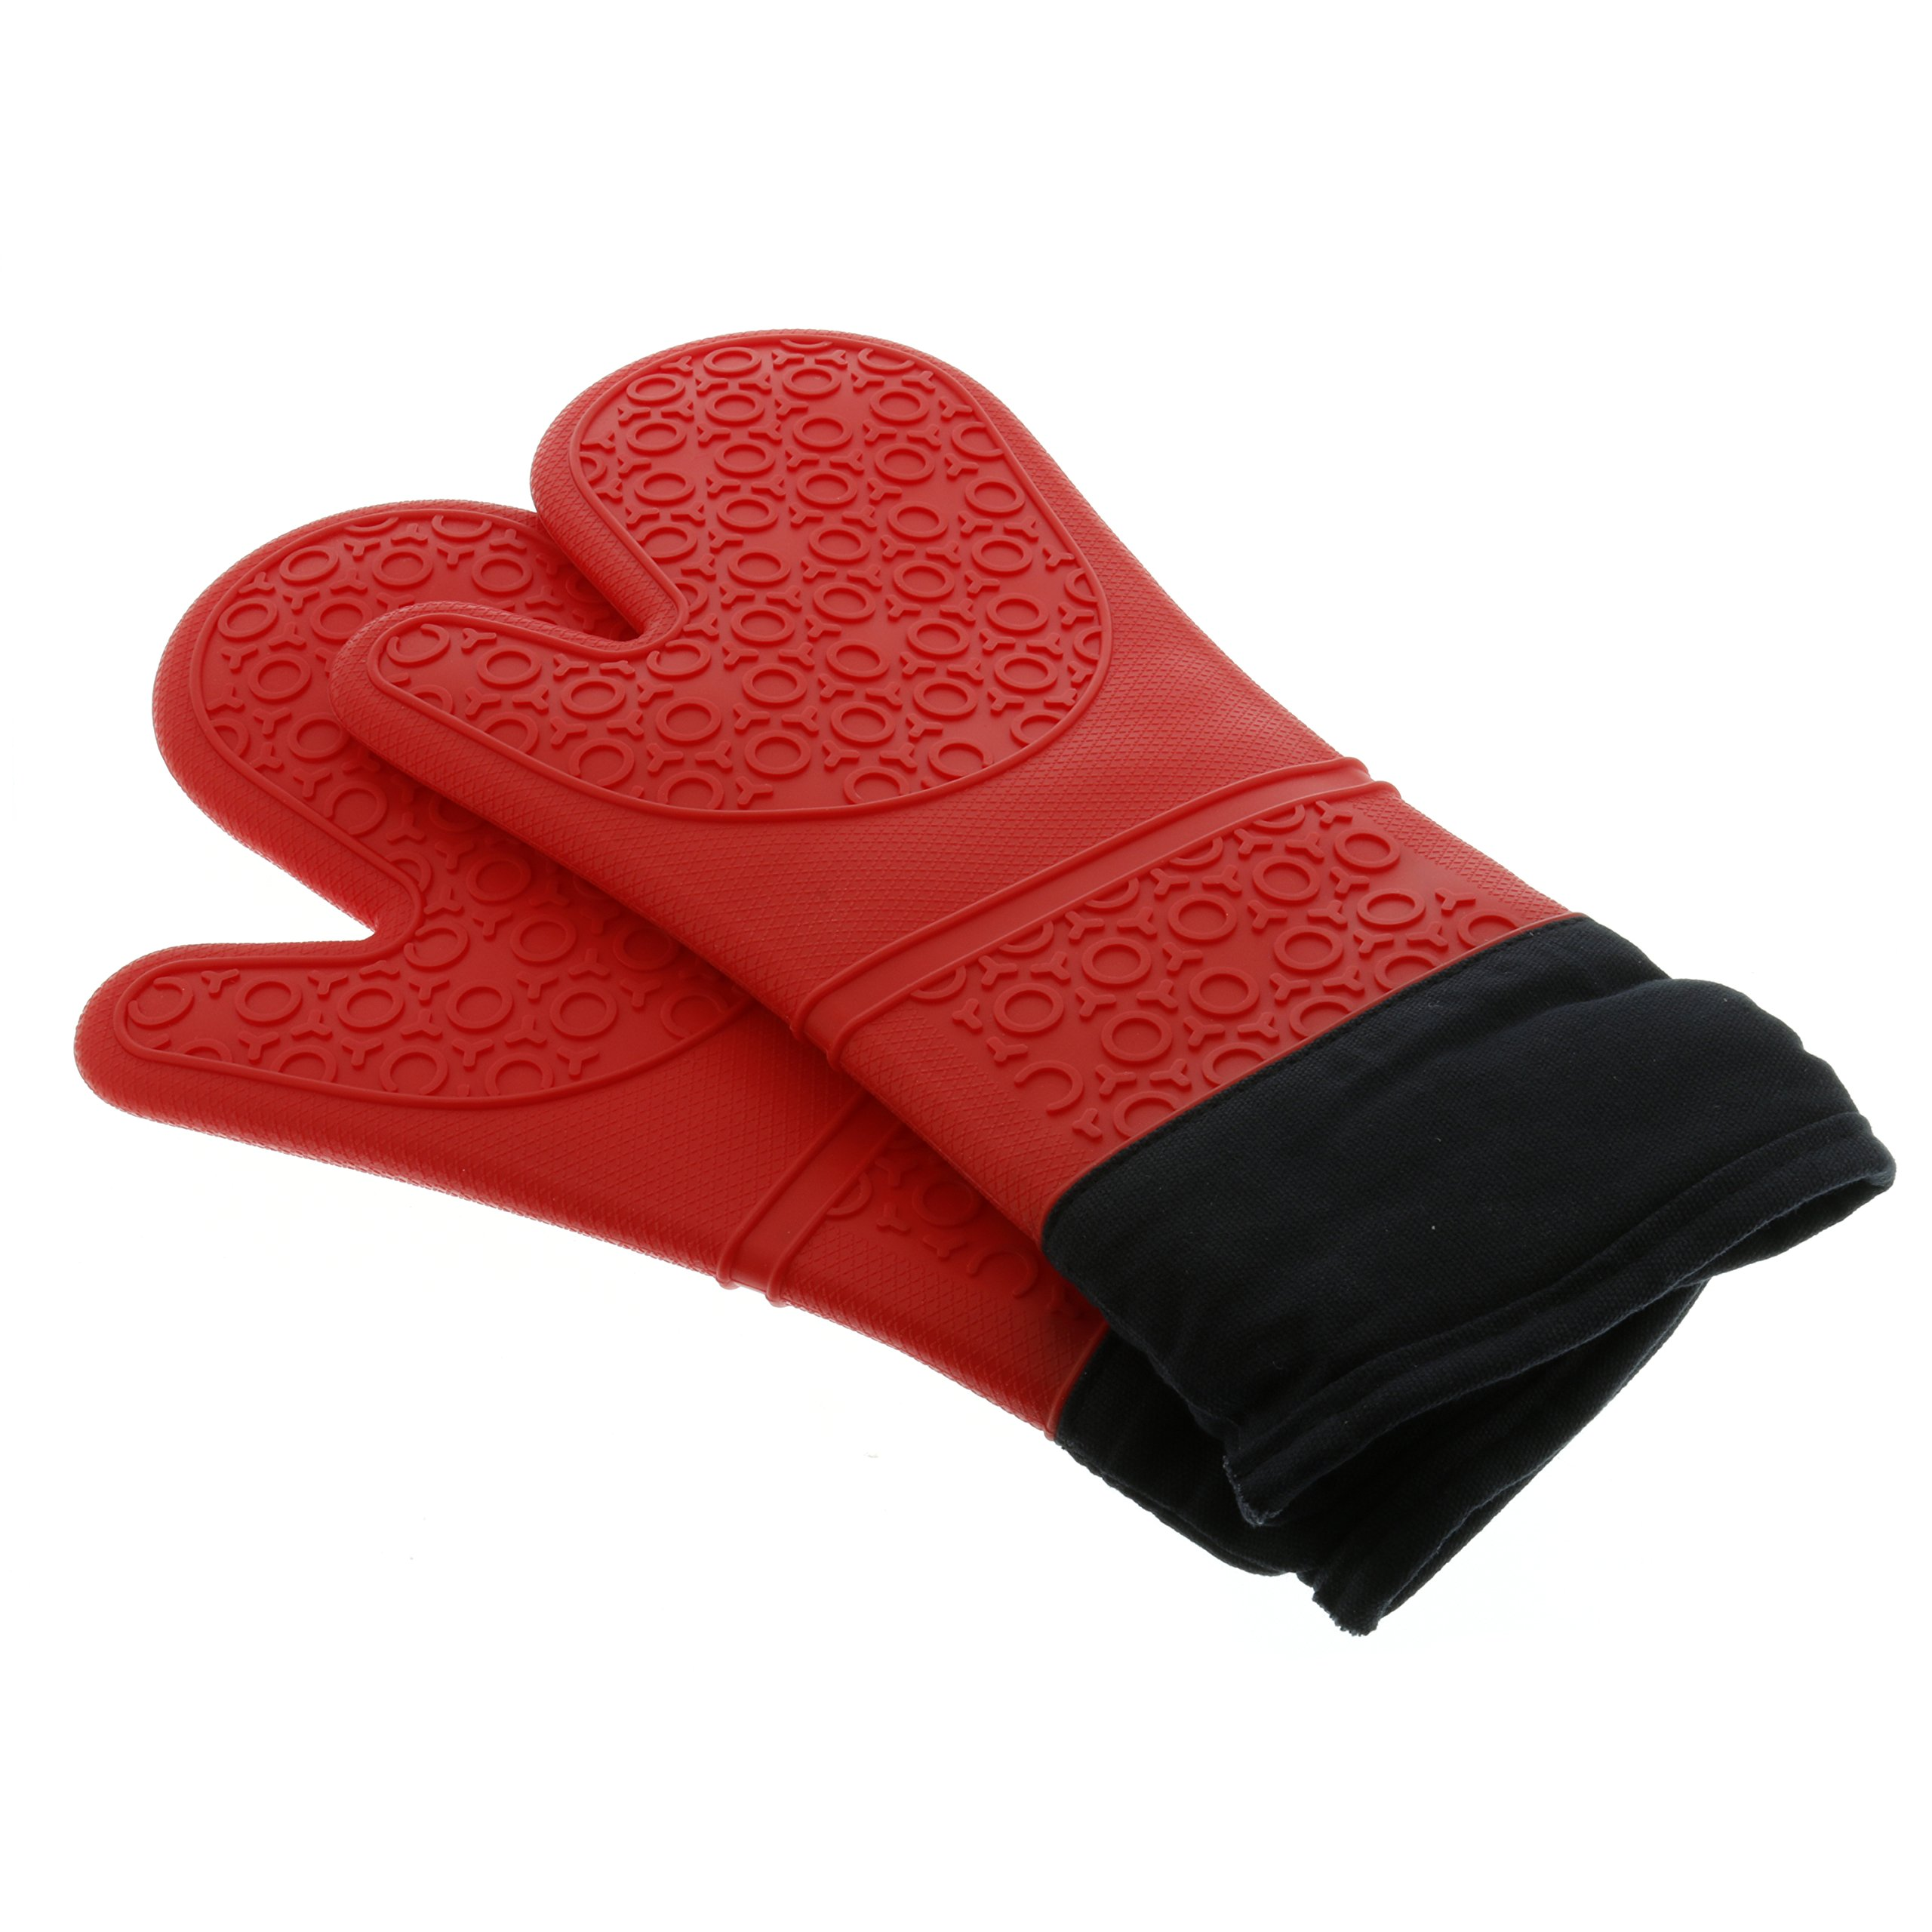 Good Cooking Silicone Oven Mitts - 1 Pair - Extra Long Oven Mitts with Quilted Liner for Extra Protection